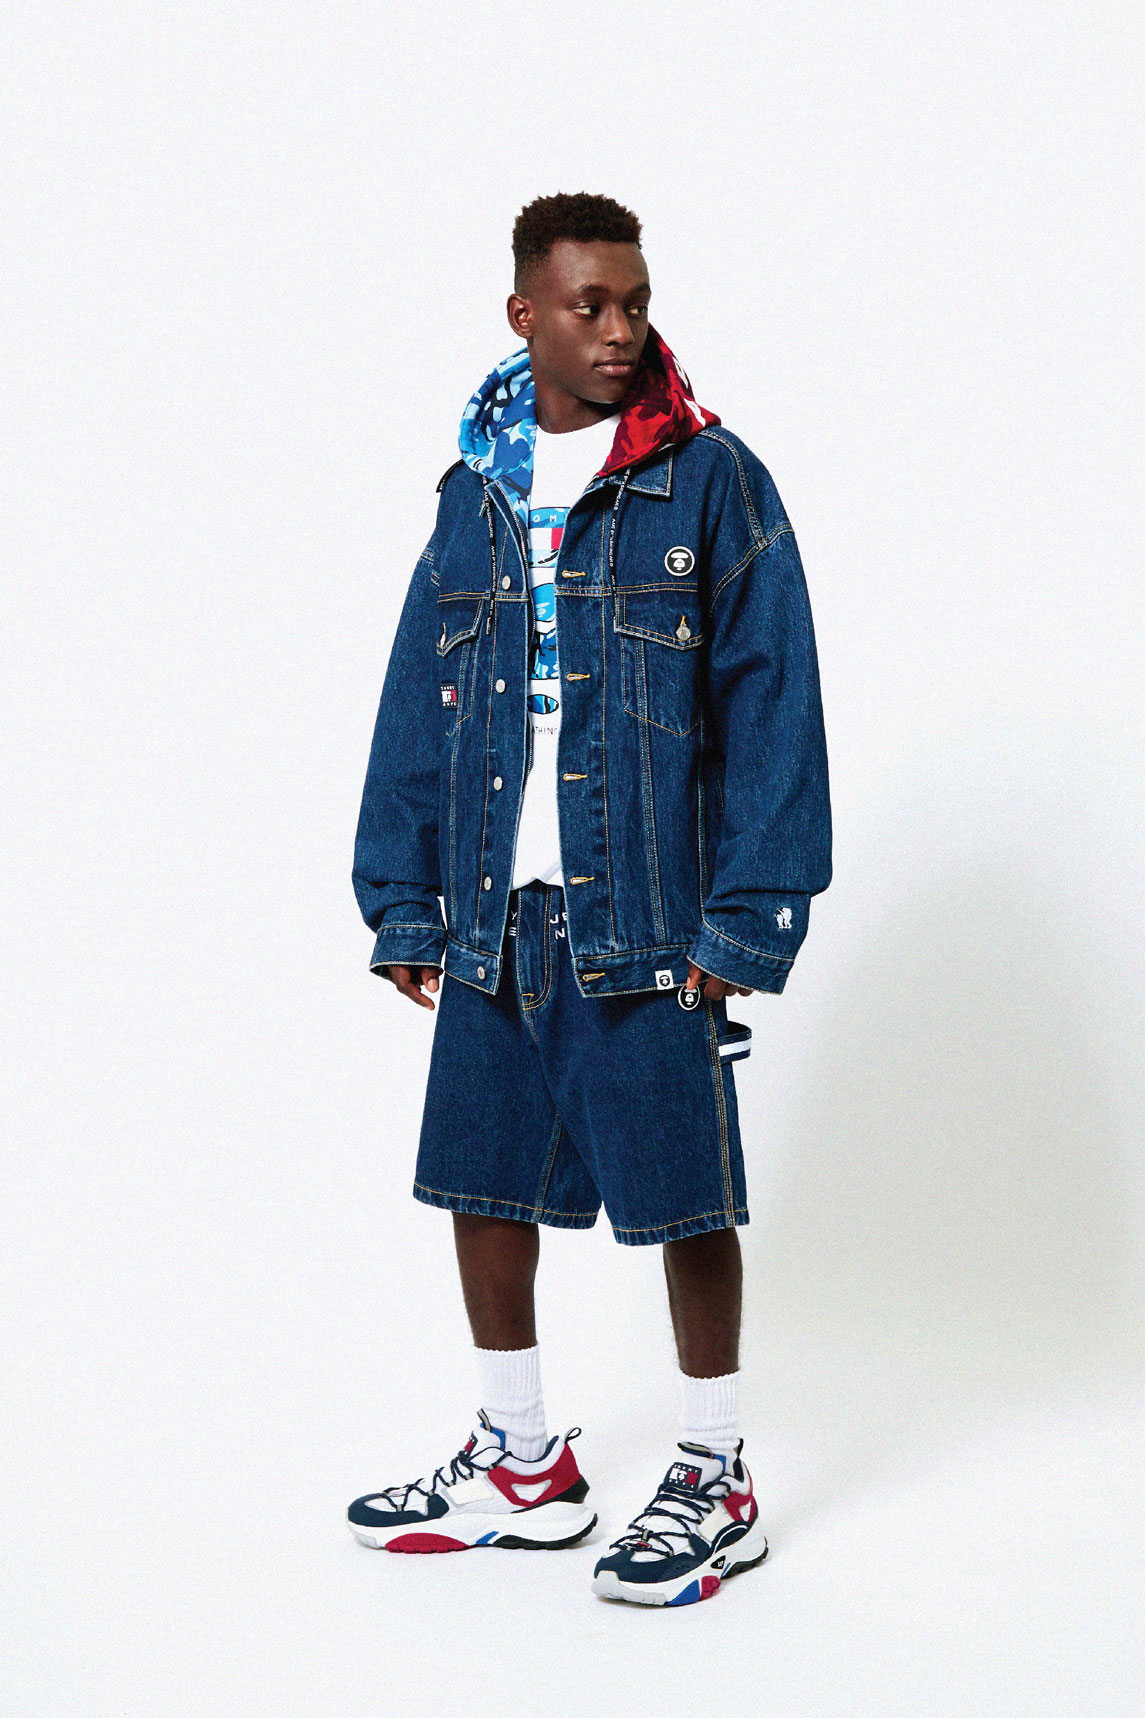 TOMMY JEANS x AAPE BY A BATHING APE 合作胶囊系列正式公布